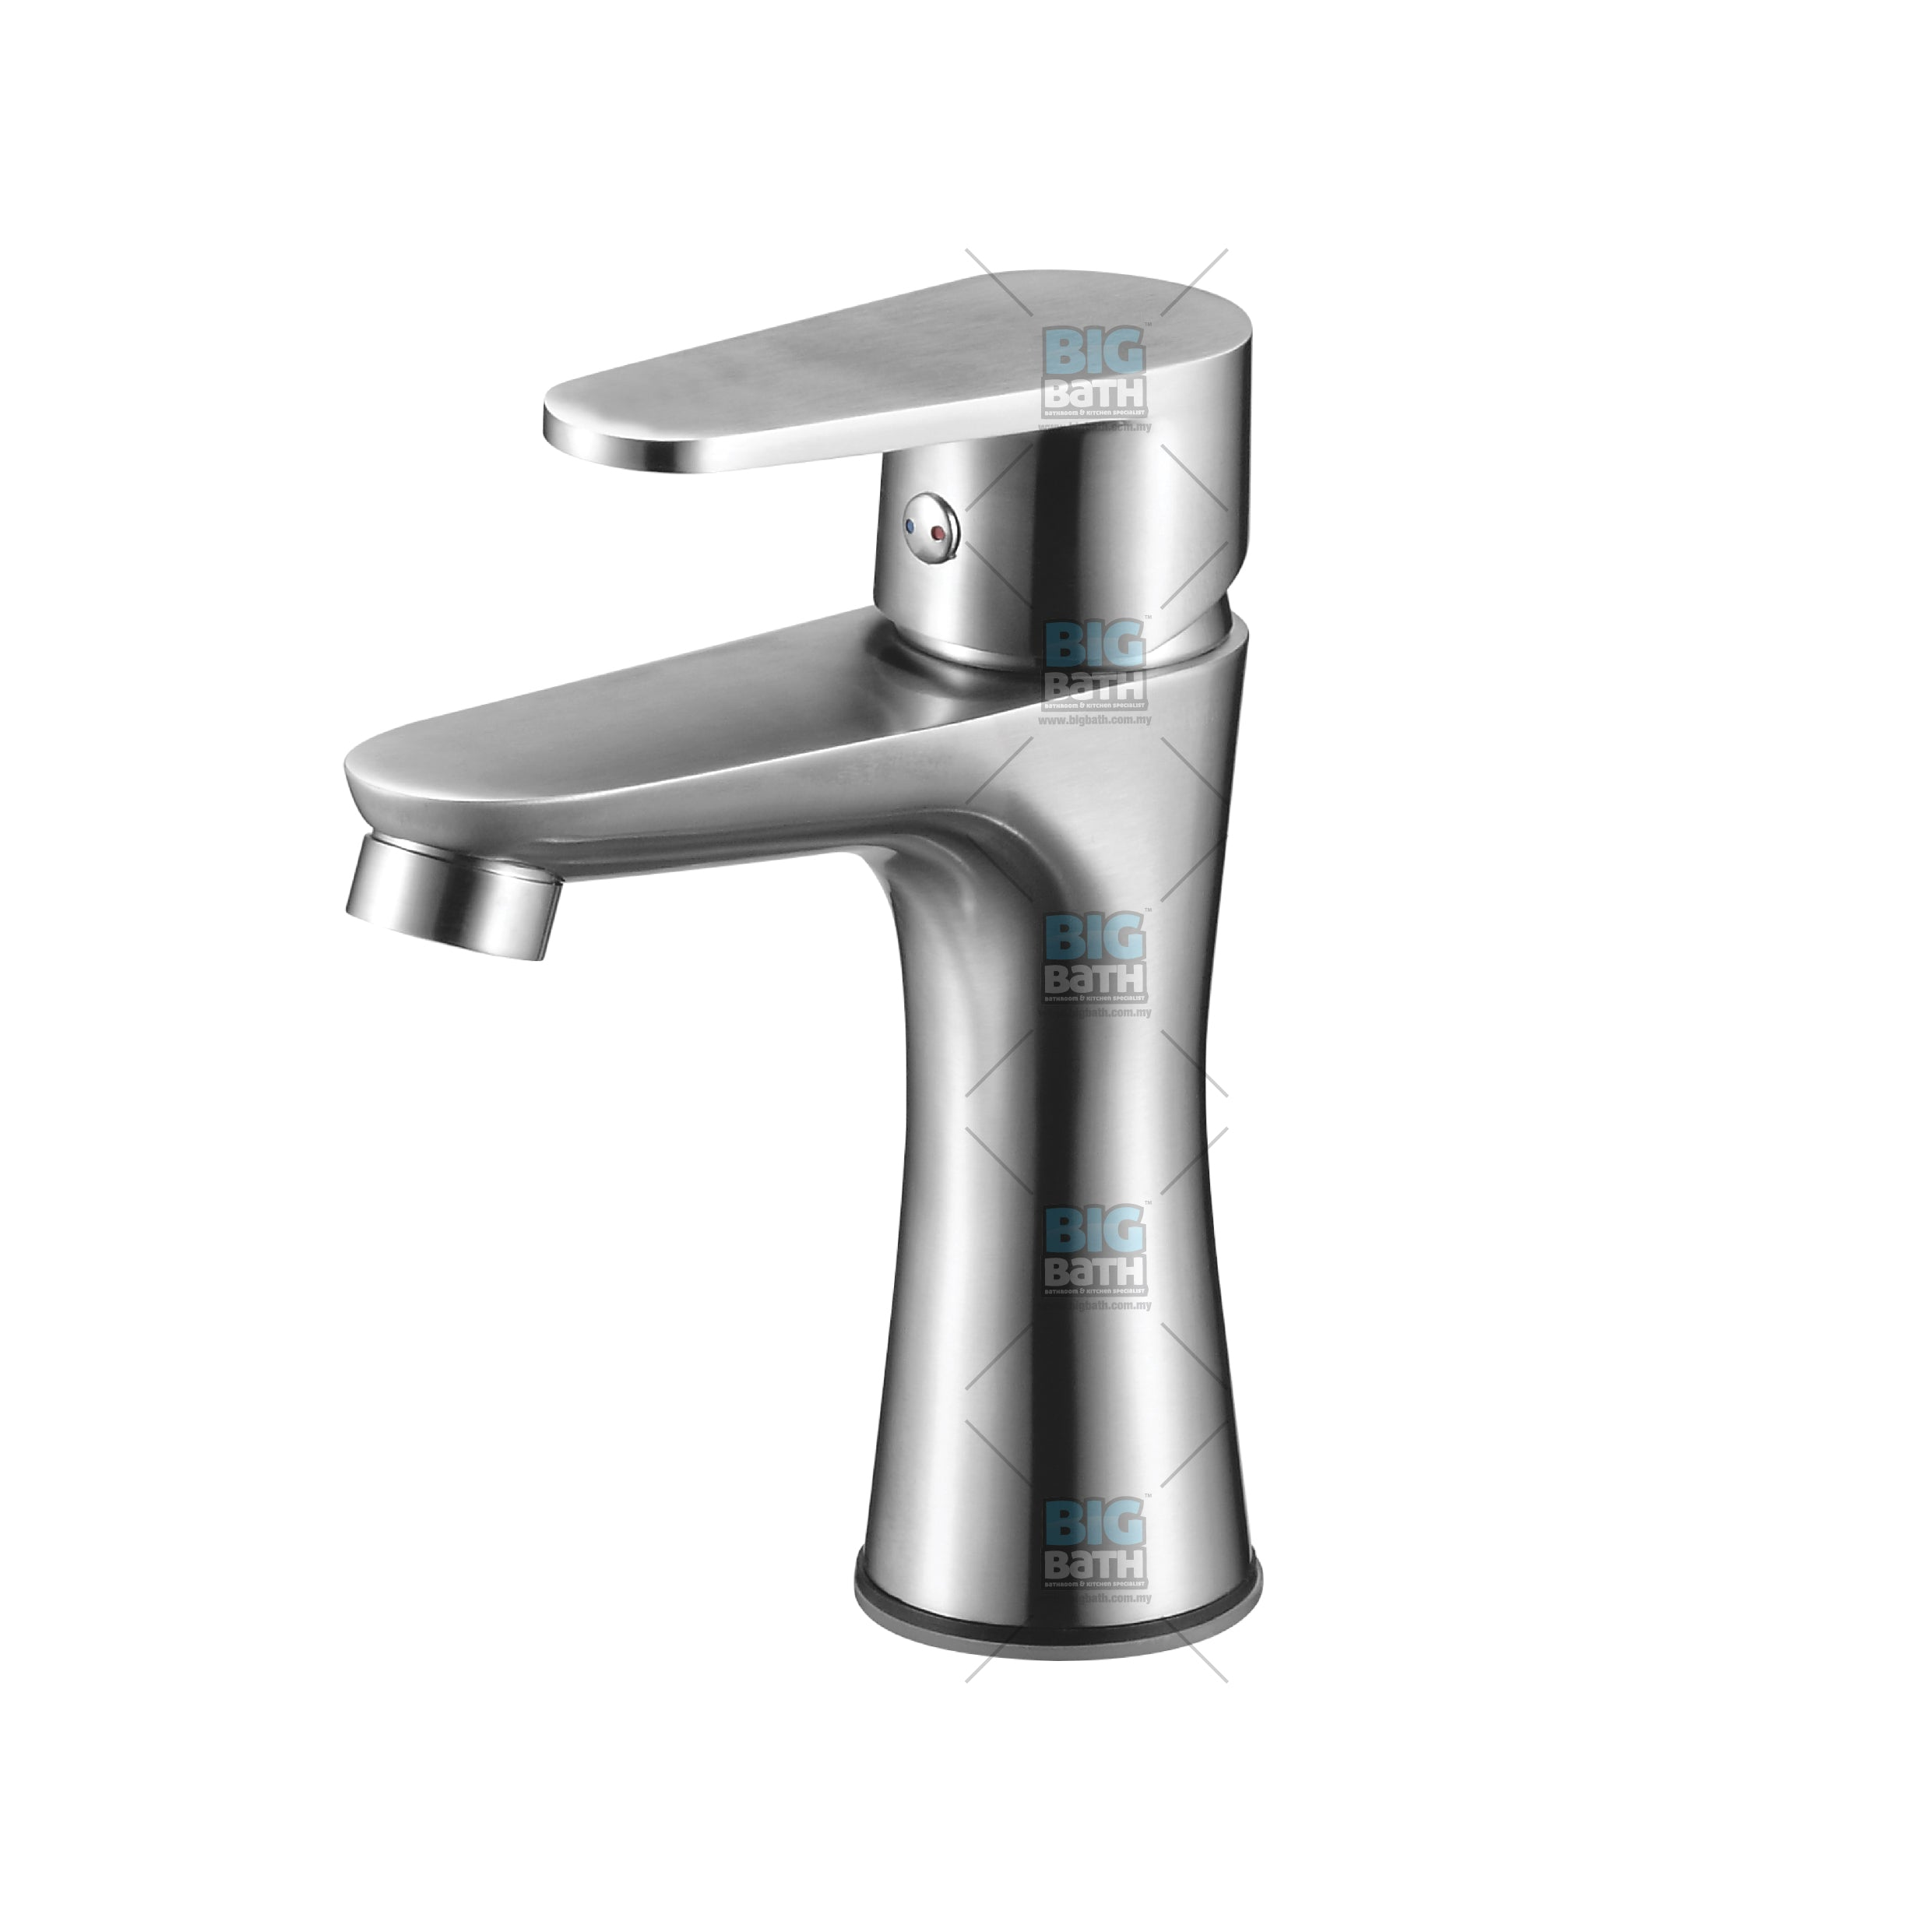 SUS304 Stainless Steel Wash Basin Mixer (4857956270125)